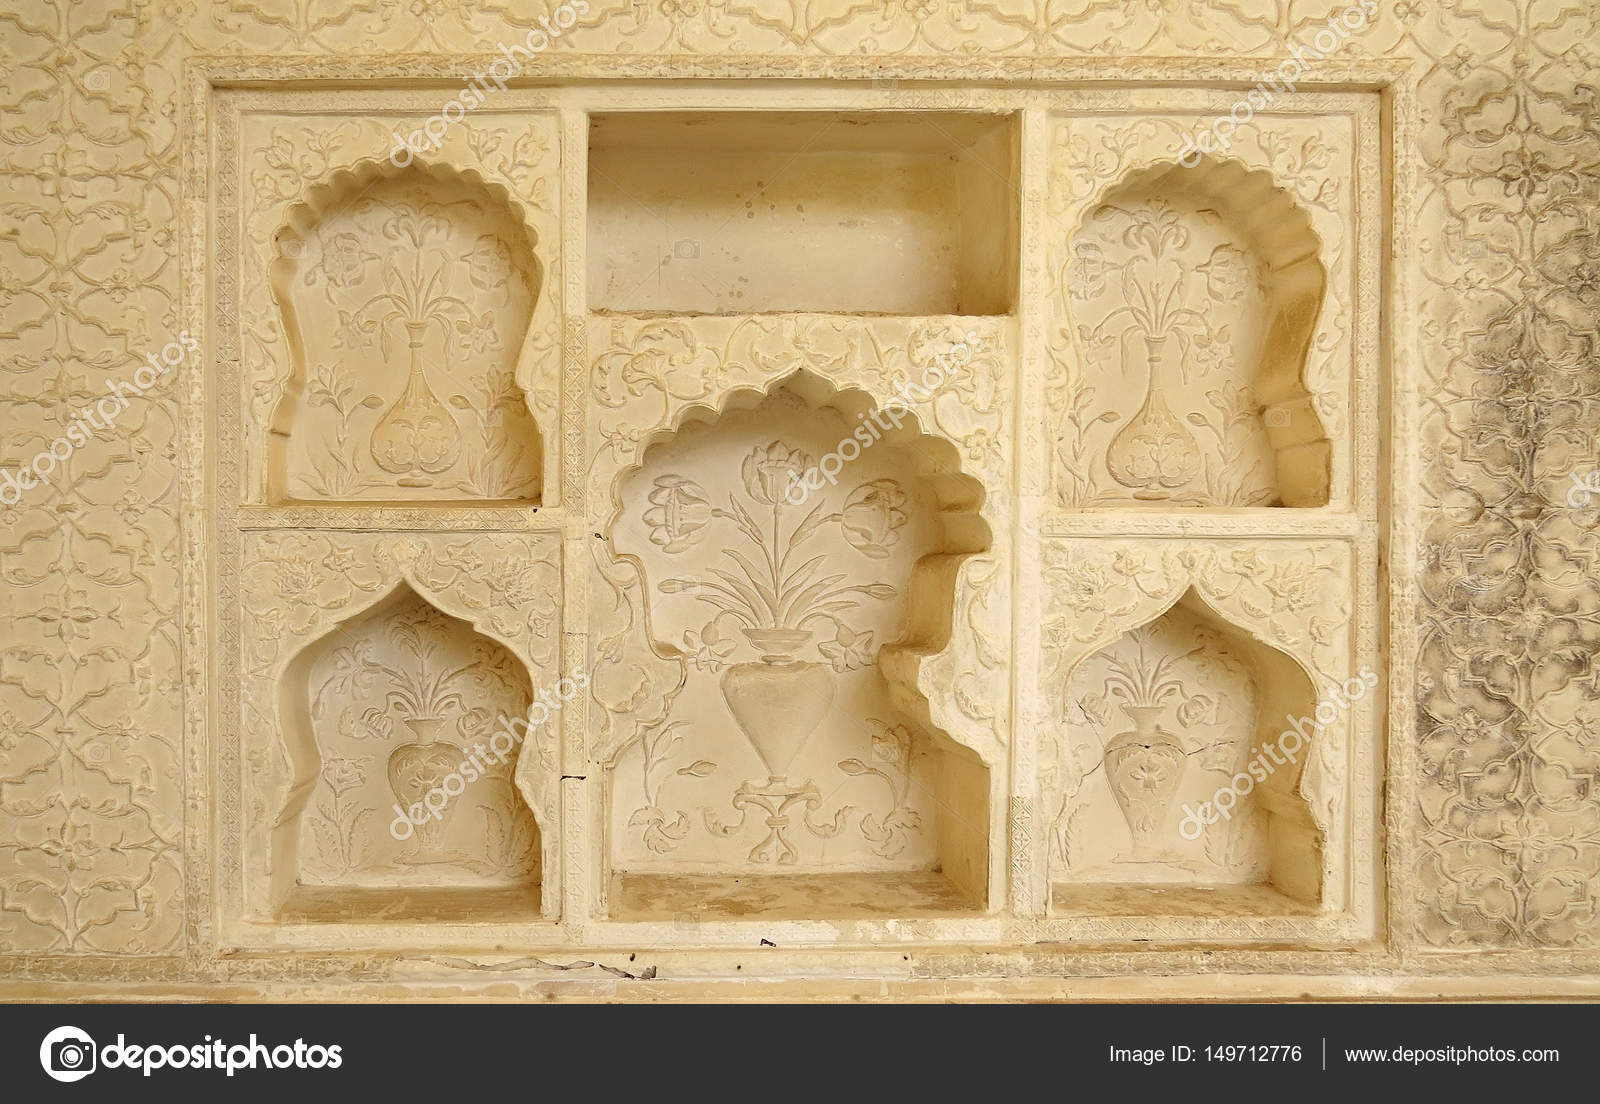 The niche-decorated wall of one of the parts of the ancient palace ...